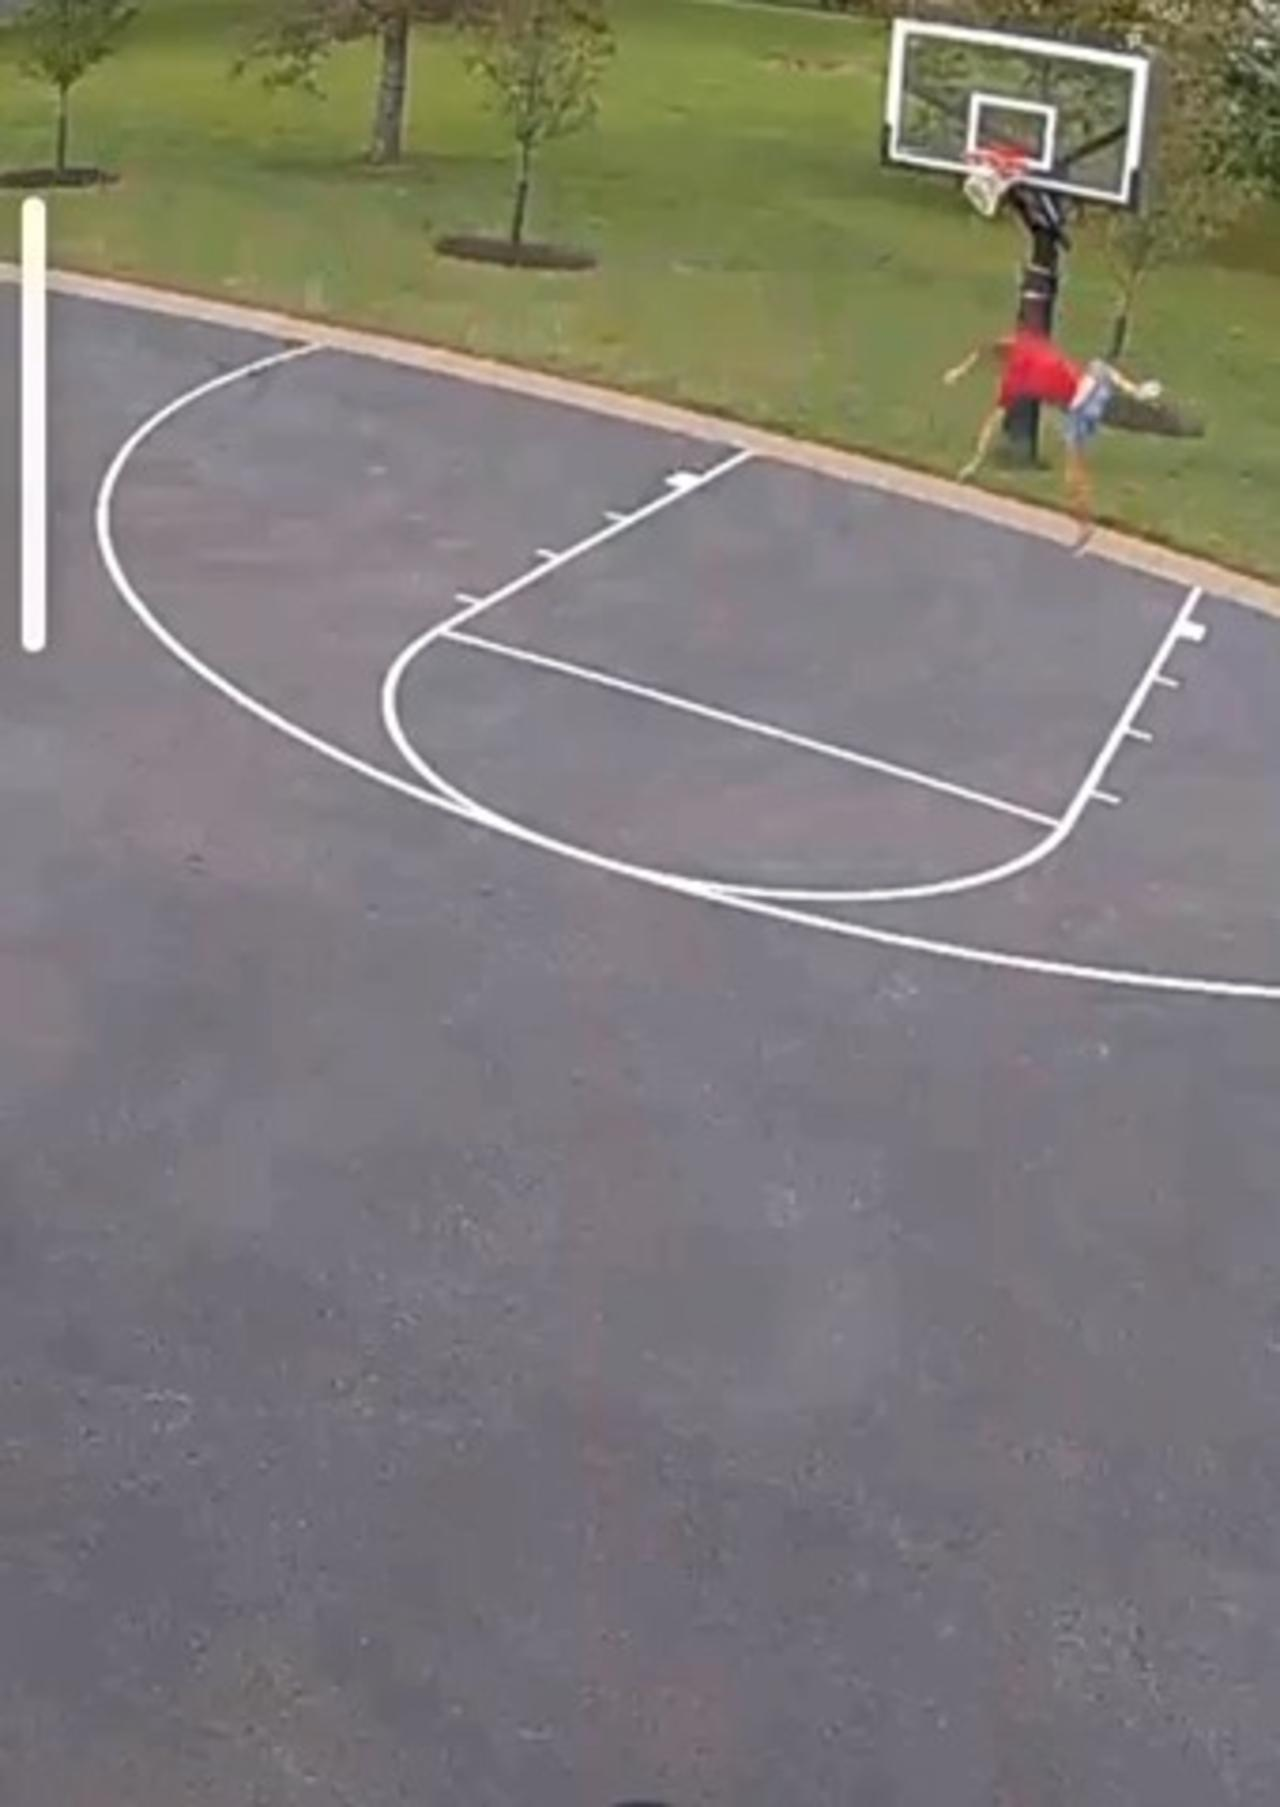 Man Falls on His Stomach While Trying to Hang on Basketball Hoop